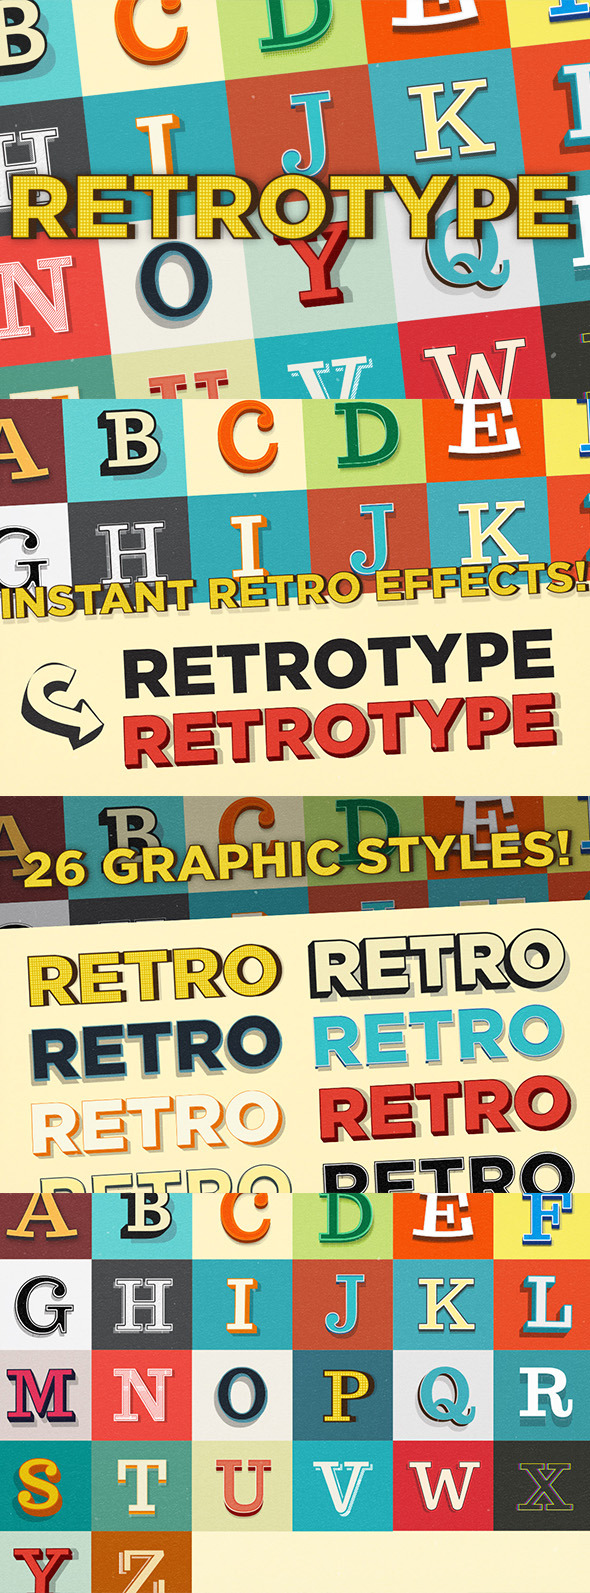 GraphicRiver Retrotype Graphic Styles 9779882